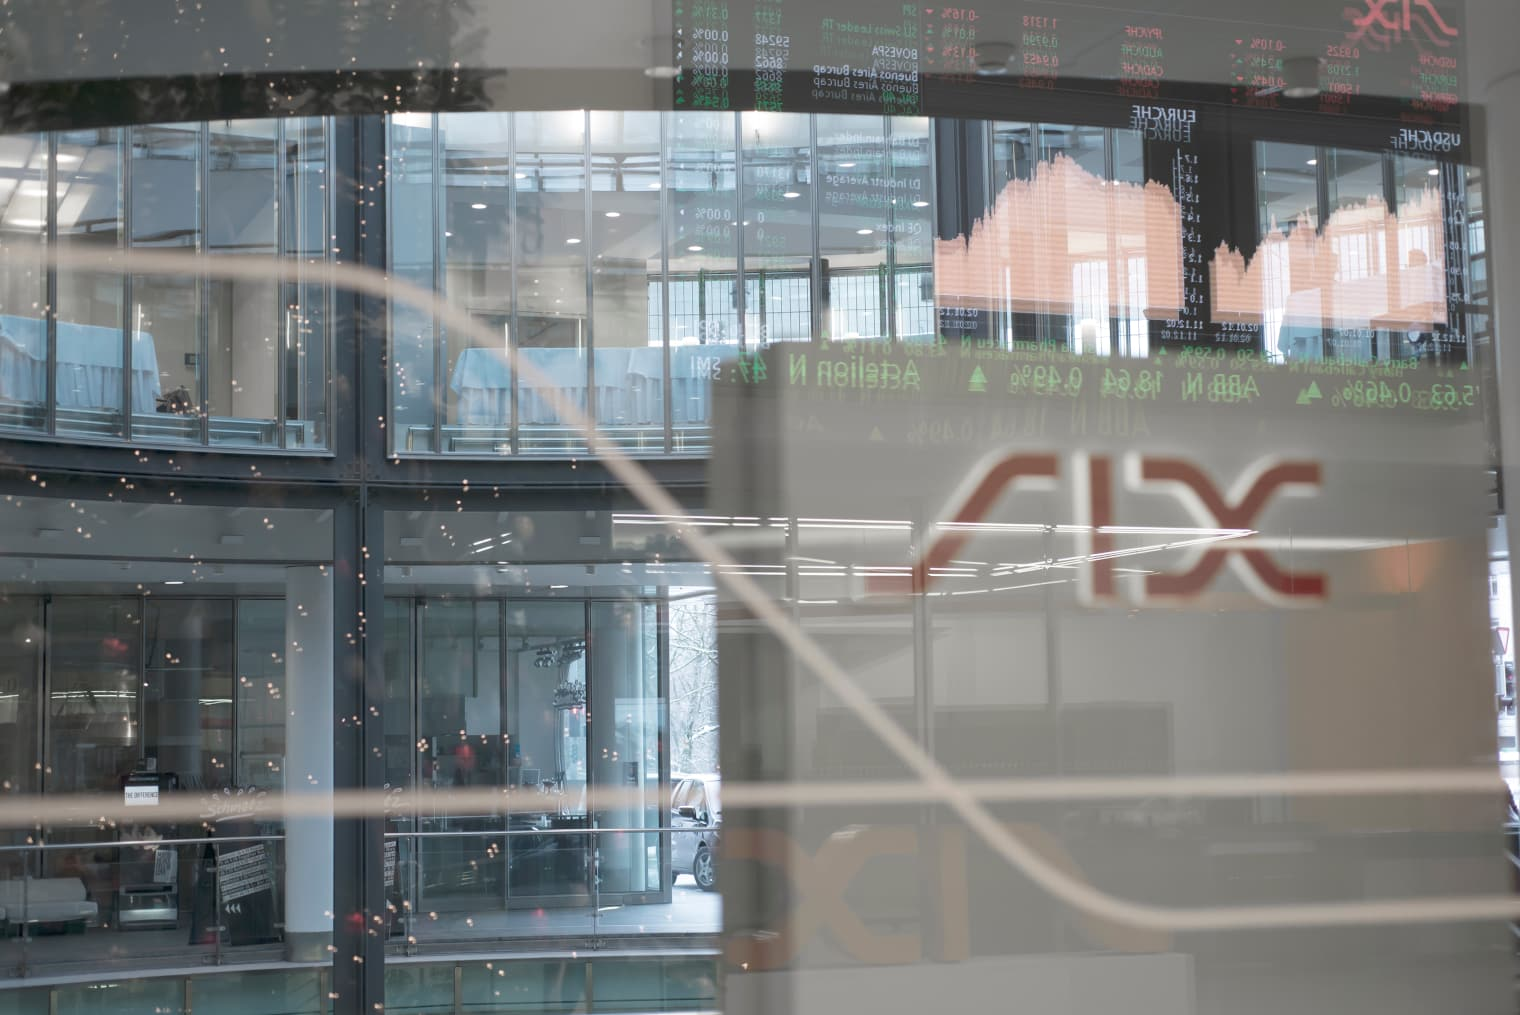 View into one of the SIX Swiss Exchange buildings